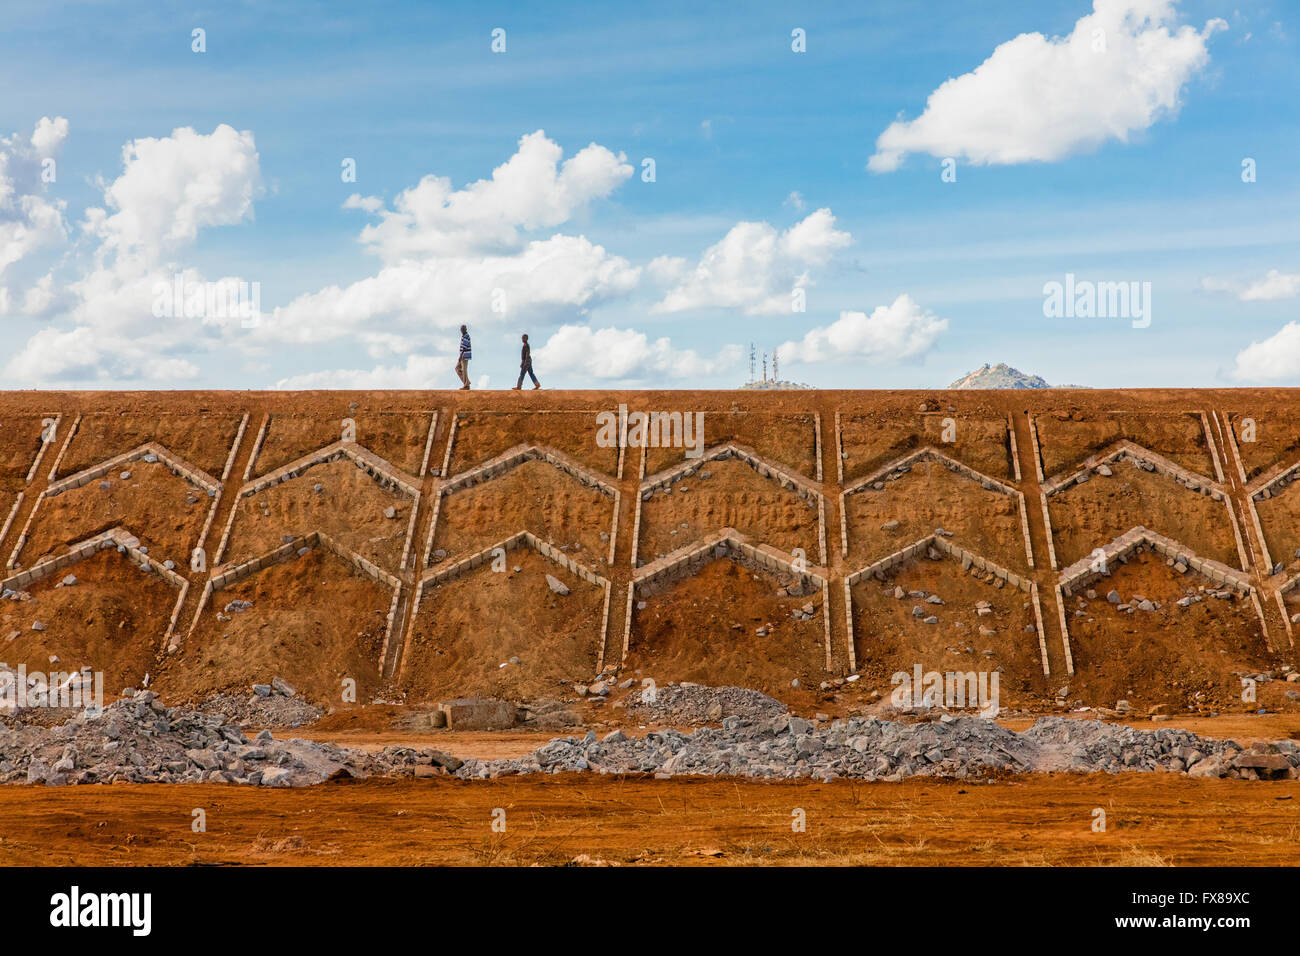 Two men walking along a newly built earth embankment of the Nairobi to Mombasa section of the China funded SG Railway - Stock Image